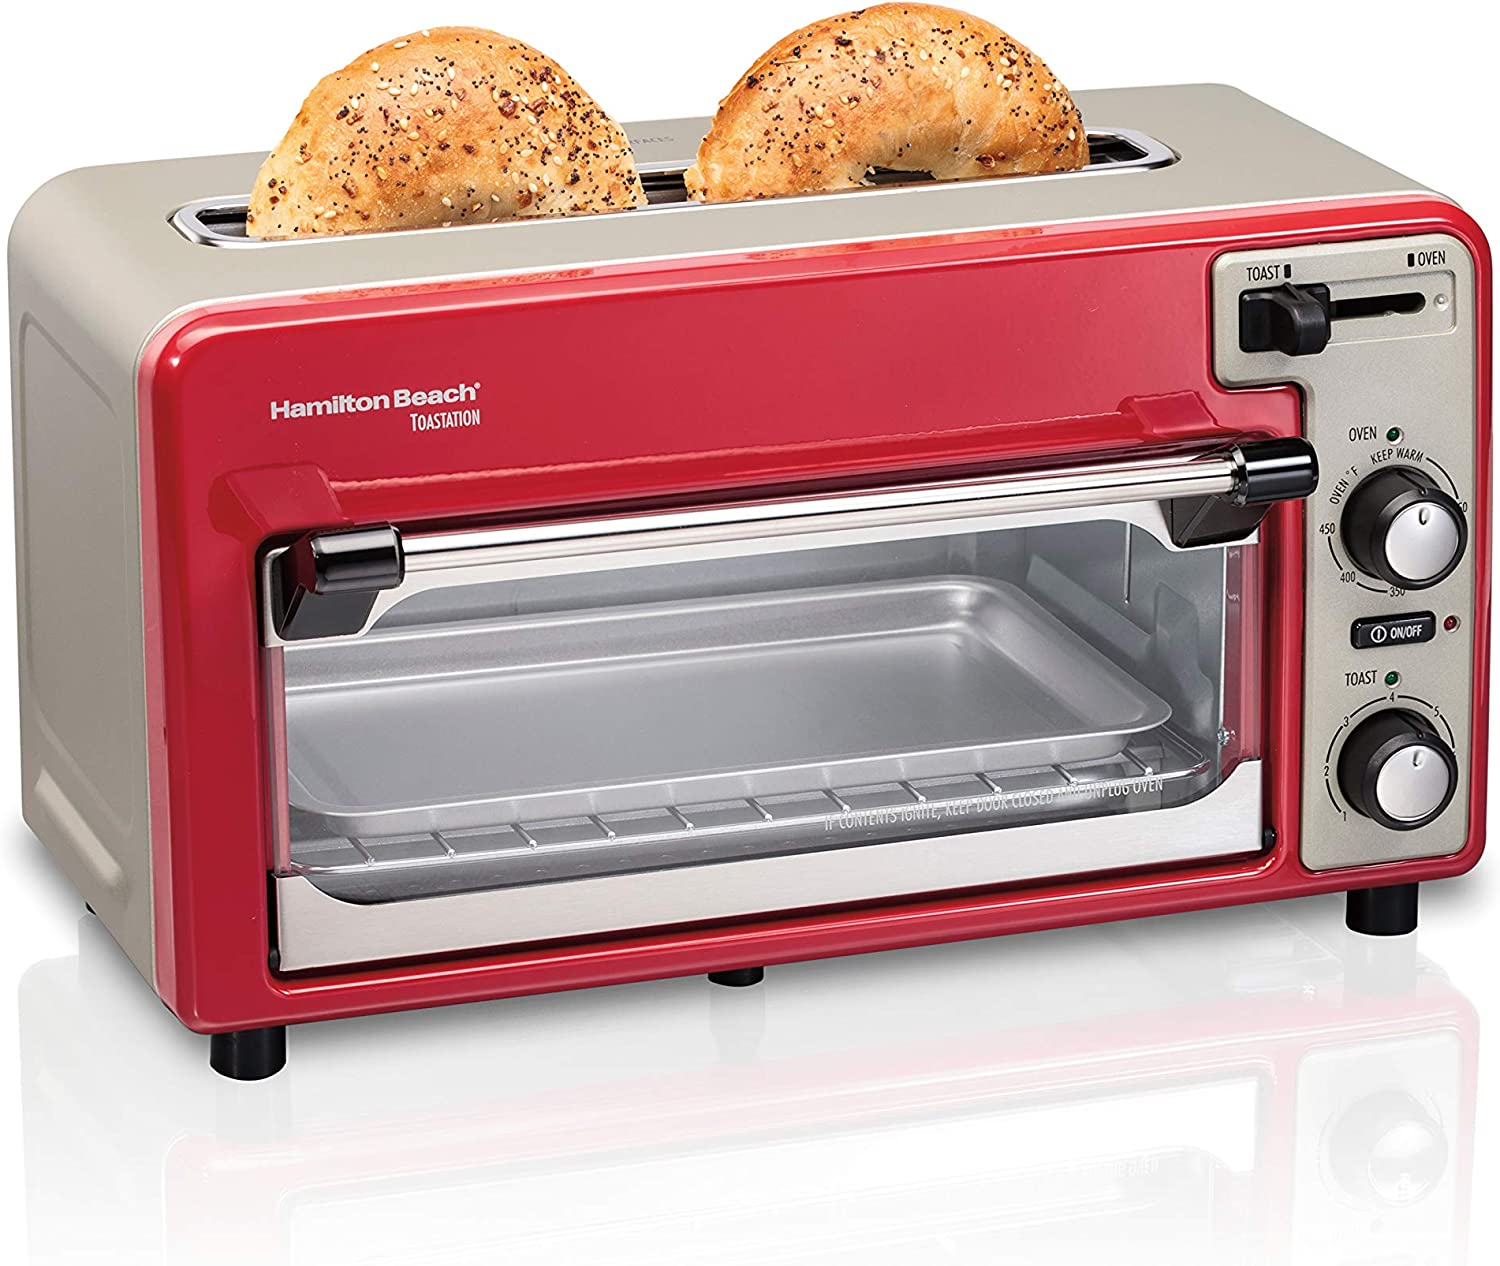 Hamilton Beach 2-in-1 Countertop Oven and 2-Slice Toaster with Extra Wide Slot, Shade Selector, Baking Pan Included, Red (22724)